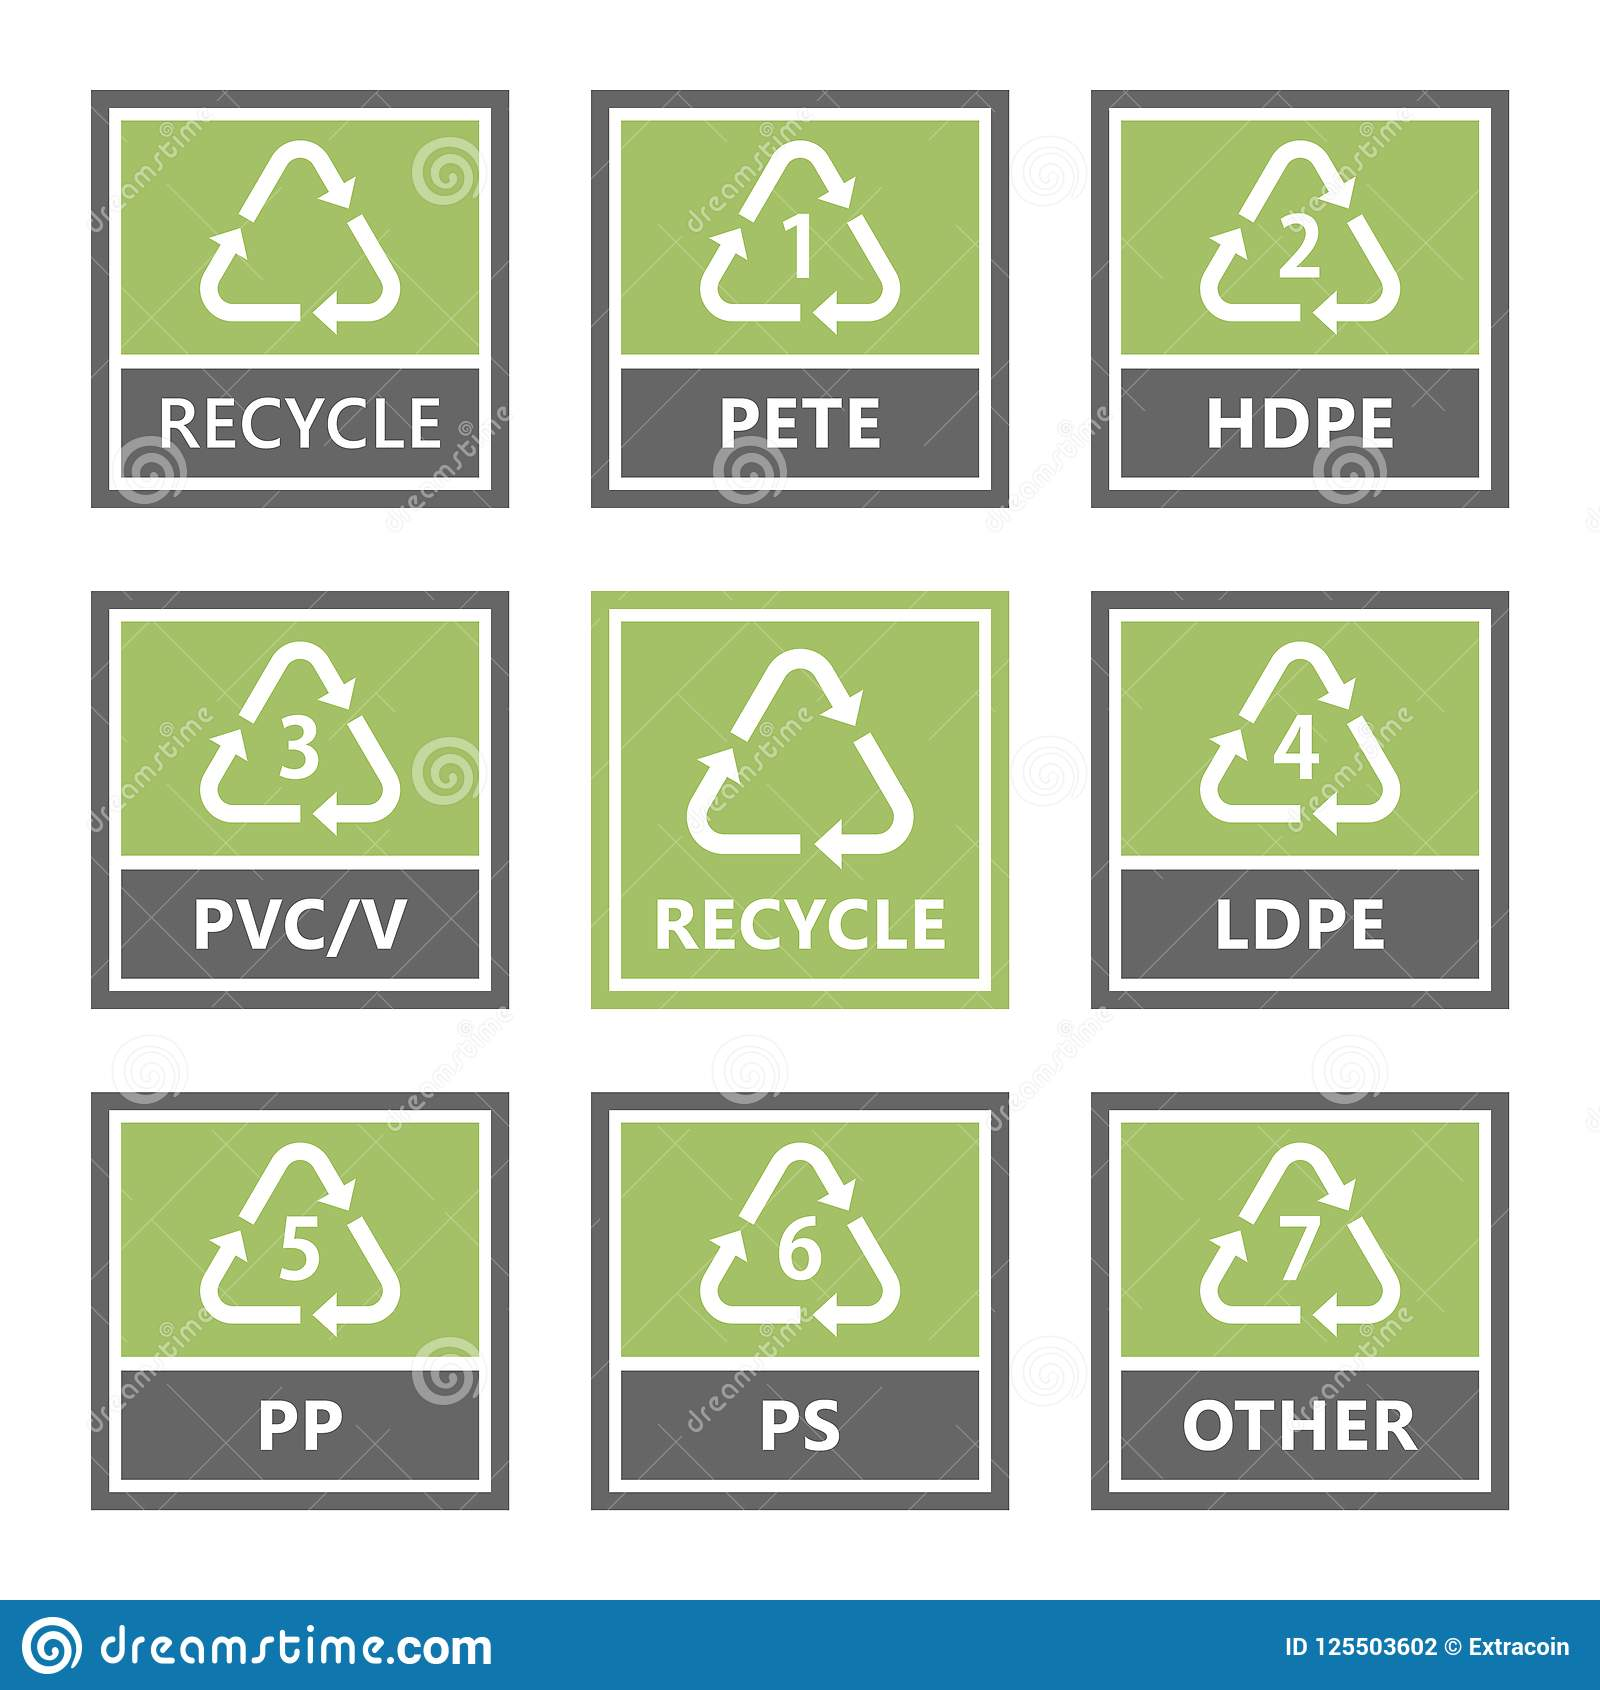 Plastic Recycling Symbols And Icons Vector Illustration Stock